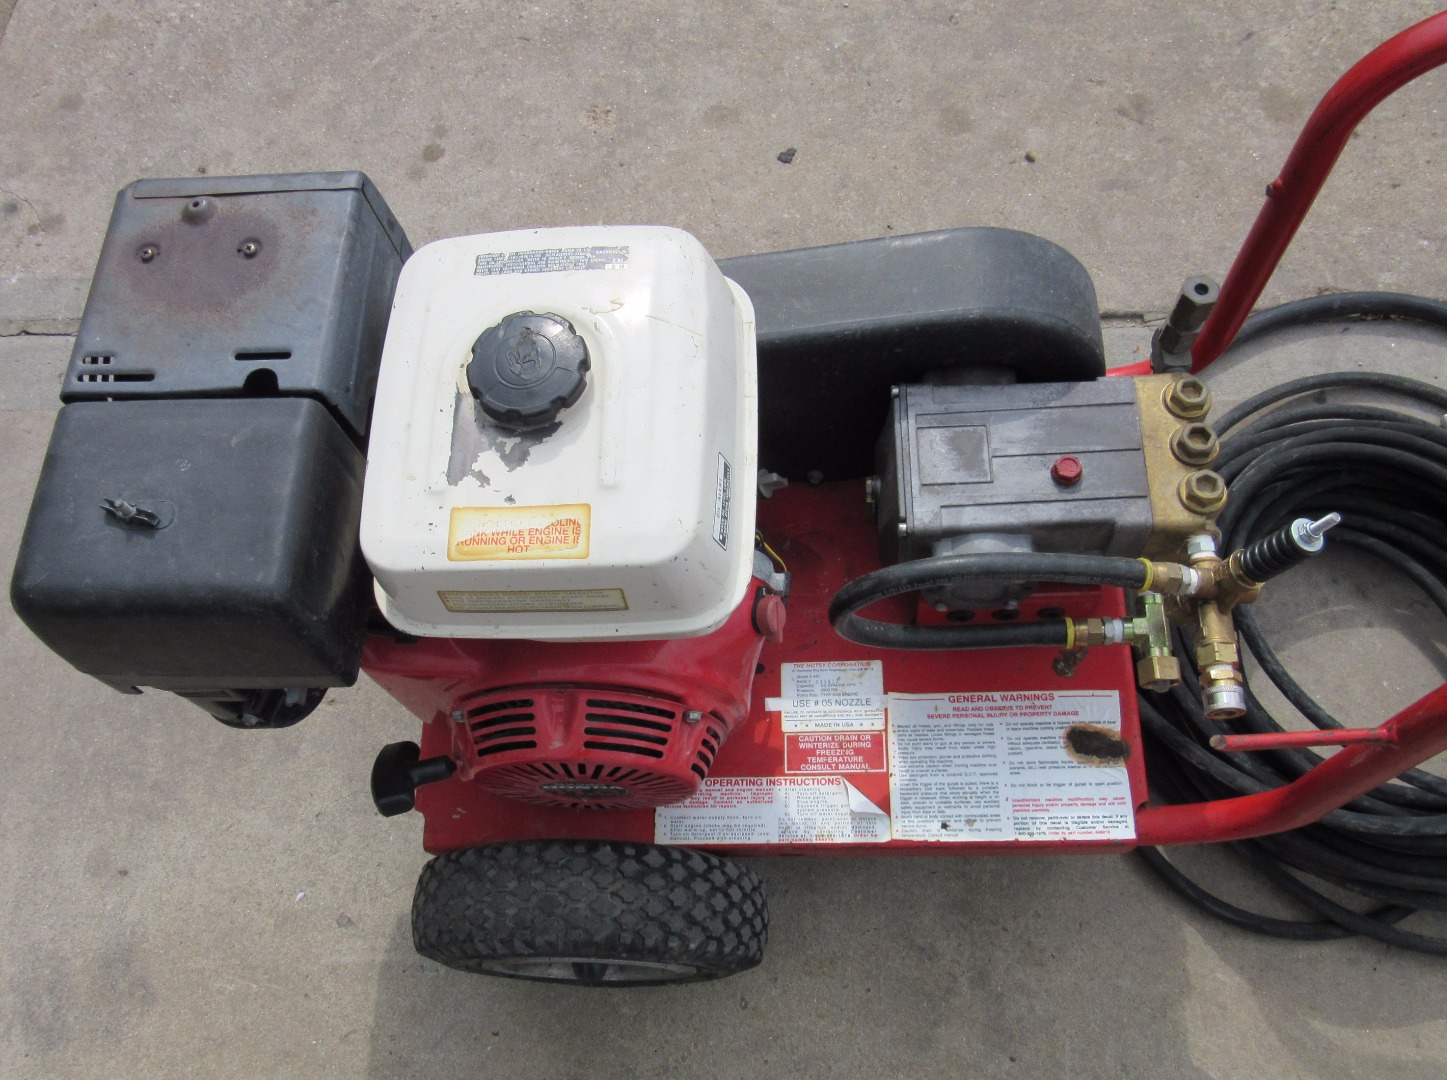 used hotsy shark 445 cold water 11hp gas 4gpm 2500psi pressure washer 1430695894480 used hotsy shark 445 cold water gas 4gpm @ 2500psi pressure washer hotsy pressure washer wiring diagram at readyjetset.co